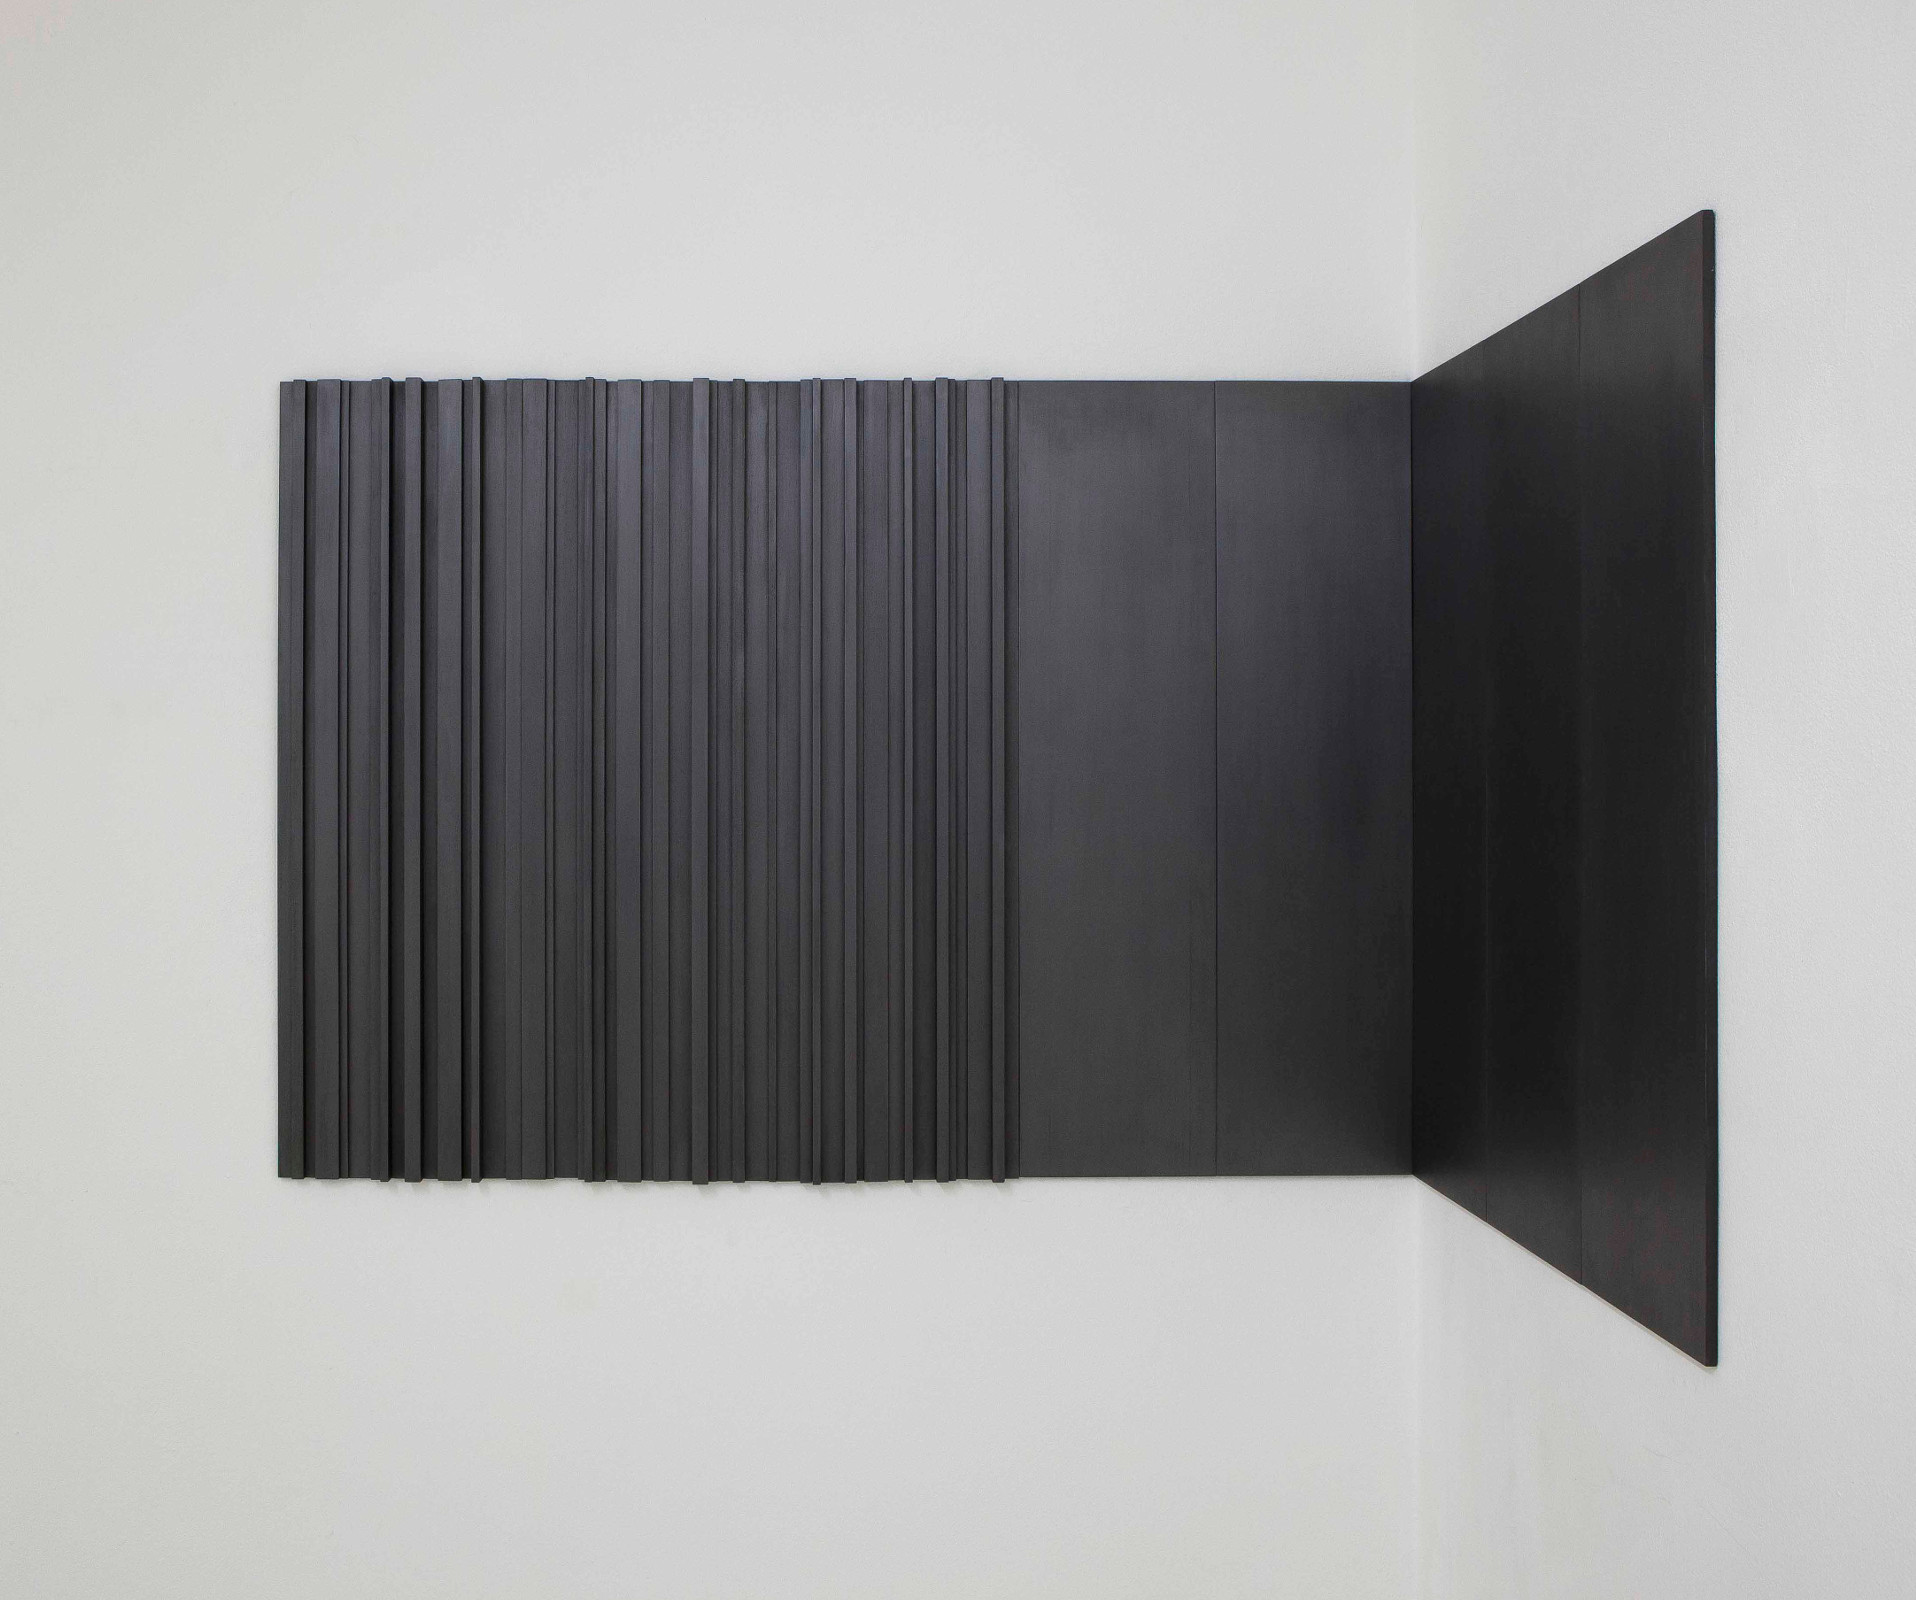 stephanie stein, Untitled, balsa wood, graphite, 75x140x50cm